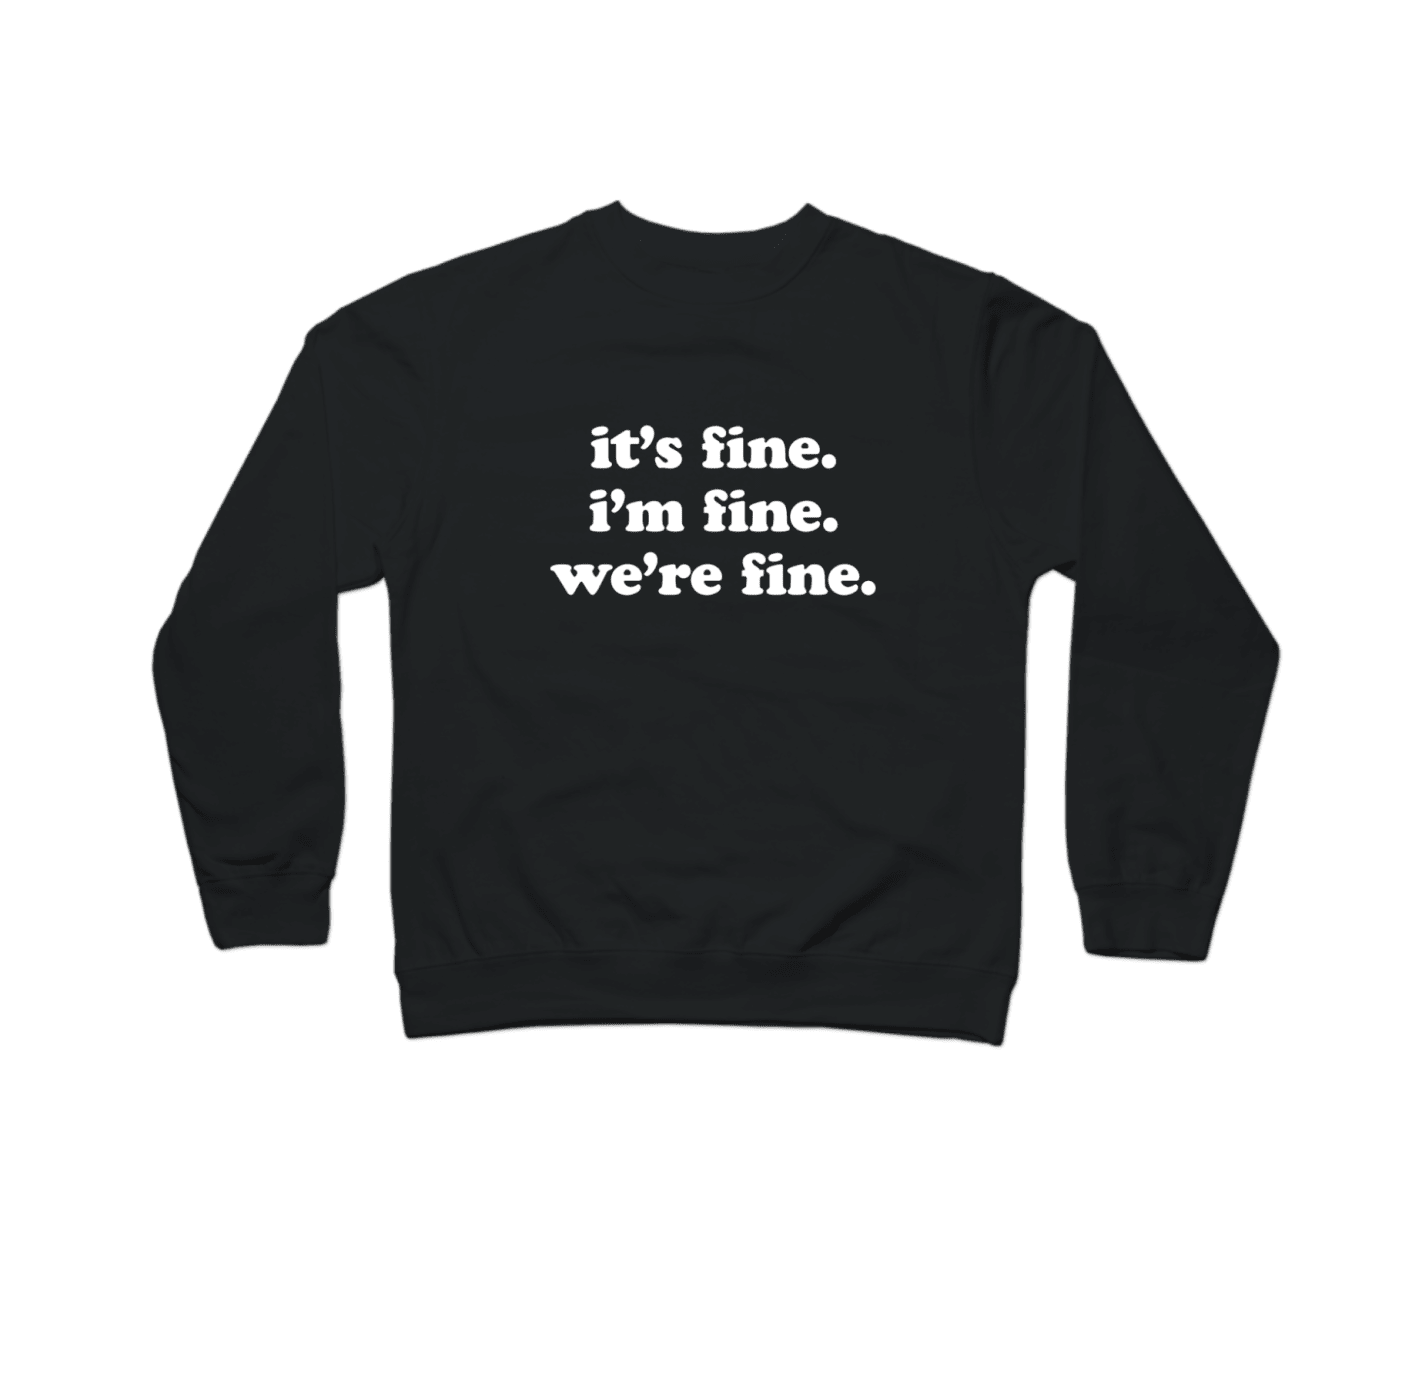 "a black crew neck that says ""it's fine i'm fine we're fine"" in white letters"